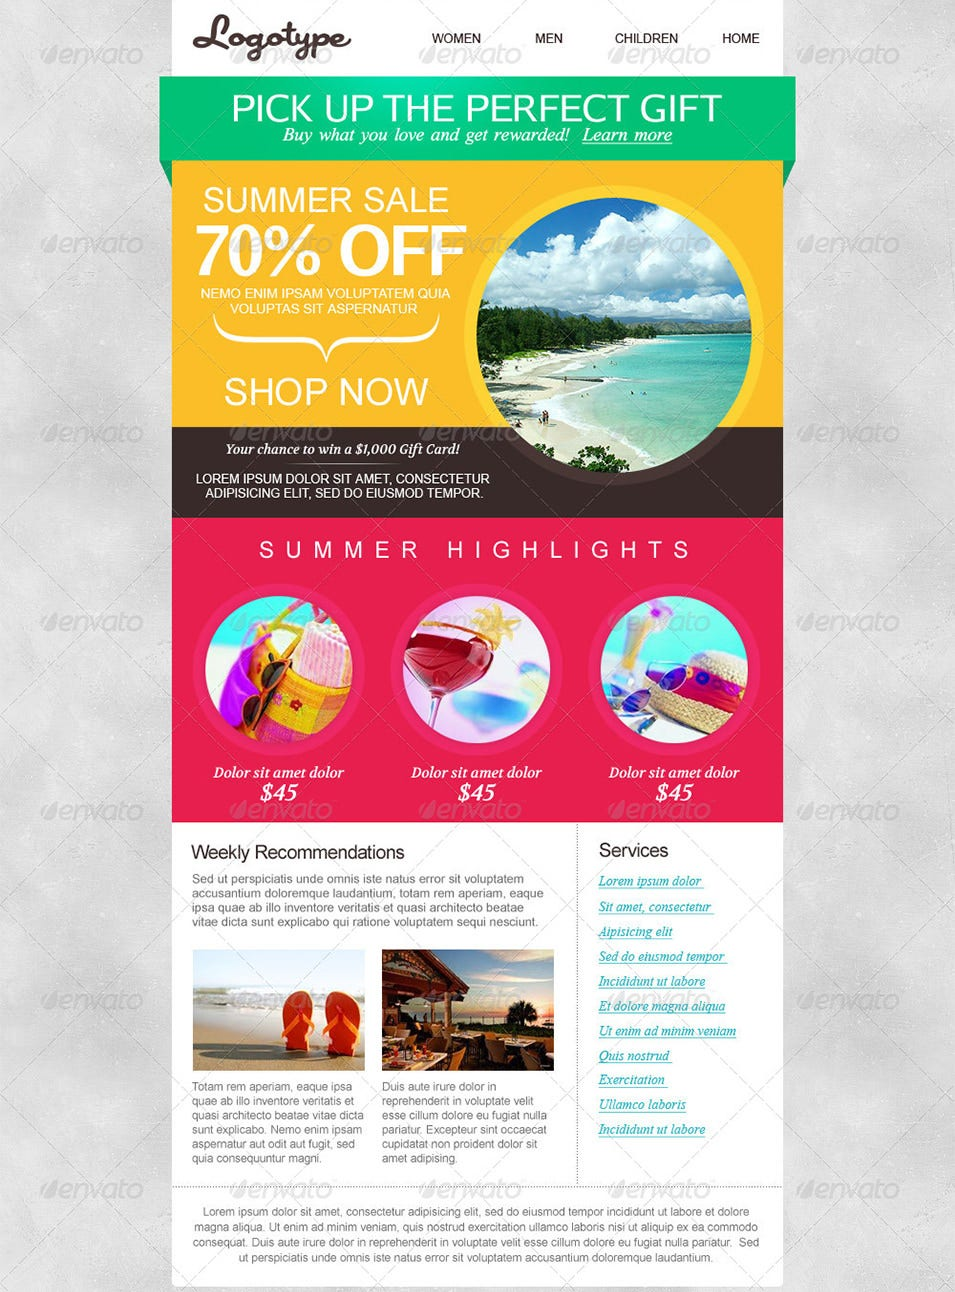 33 Best Email Template Designs for Download / Purchase | Free ...